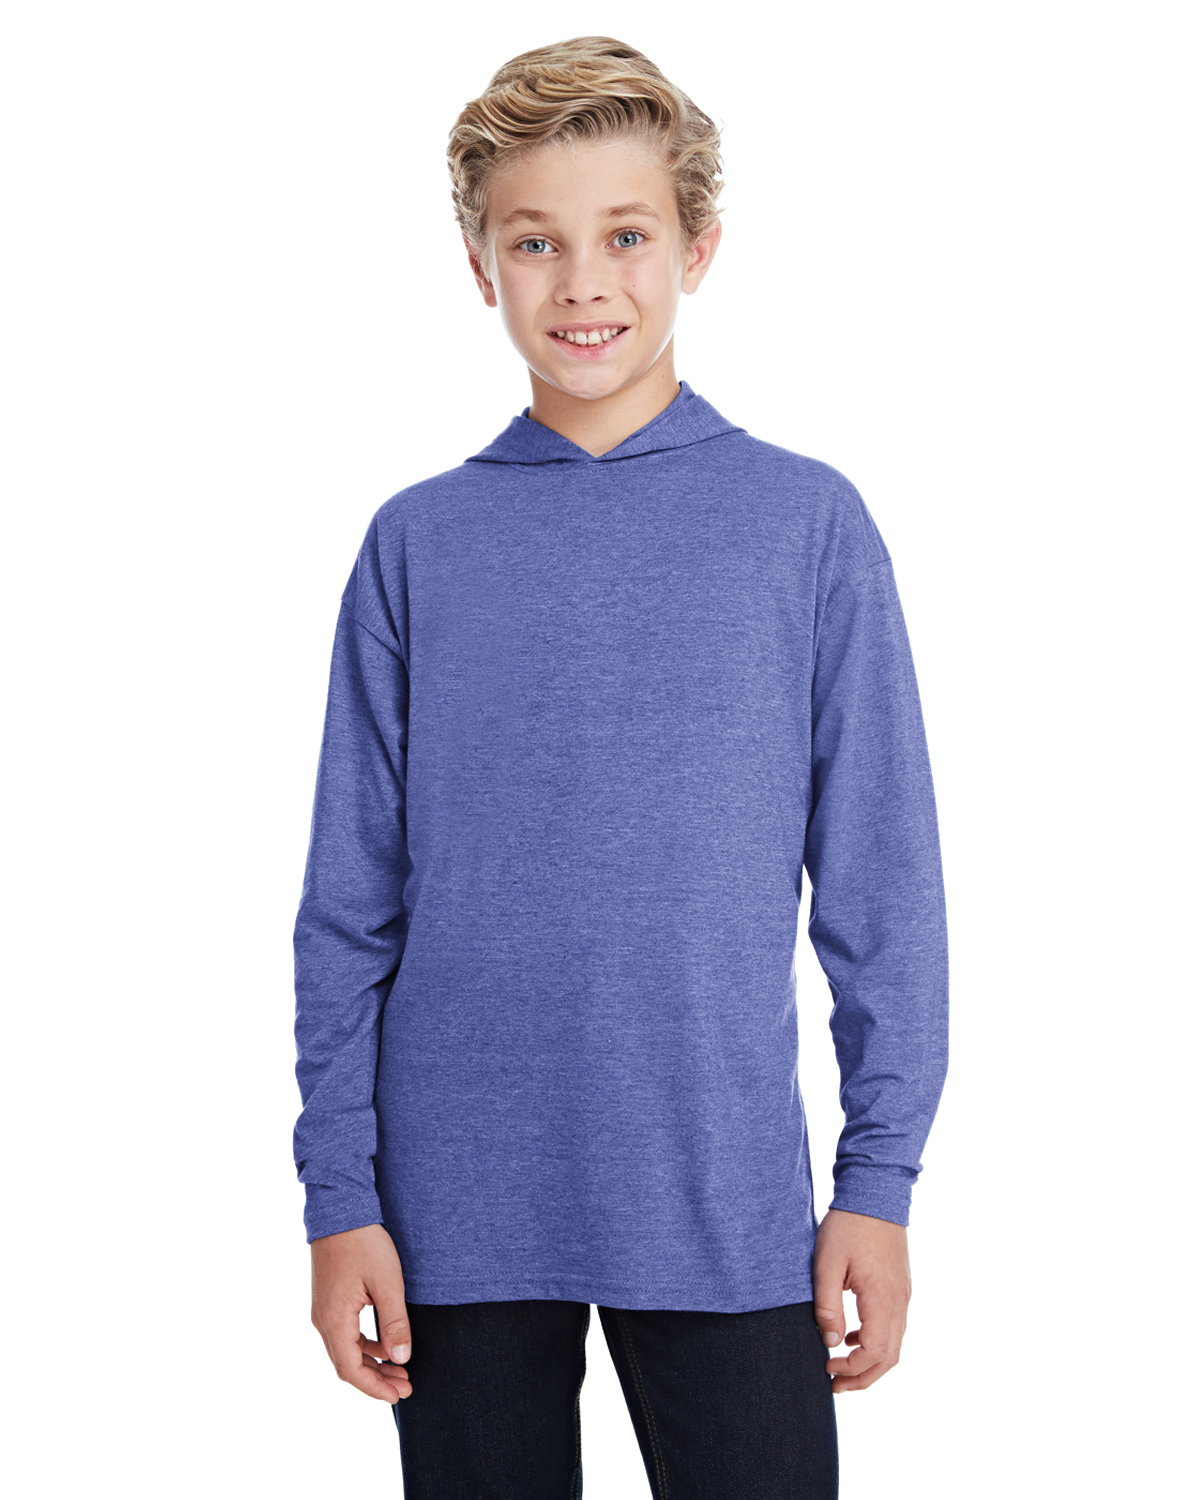 Anvil Youth Boys and Girls Long Sleeve Hooded T-Shirt 987B